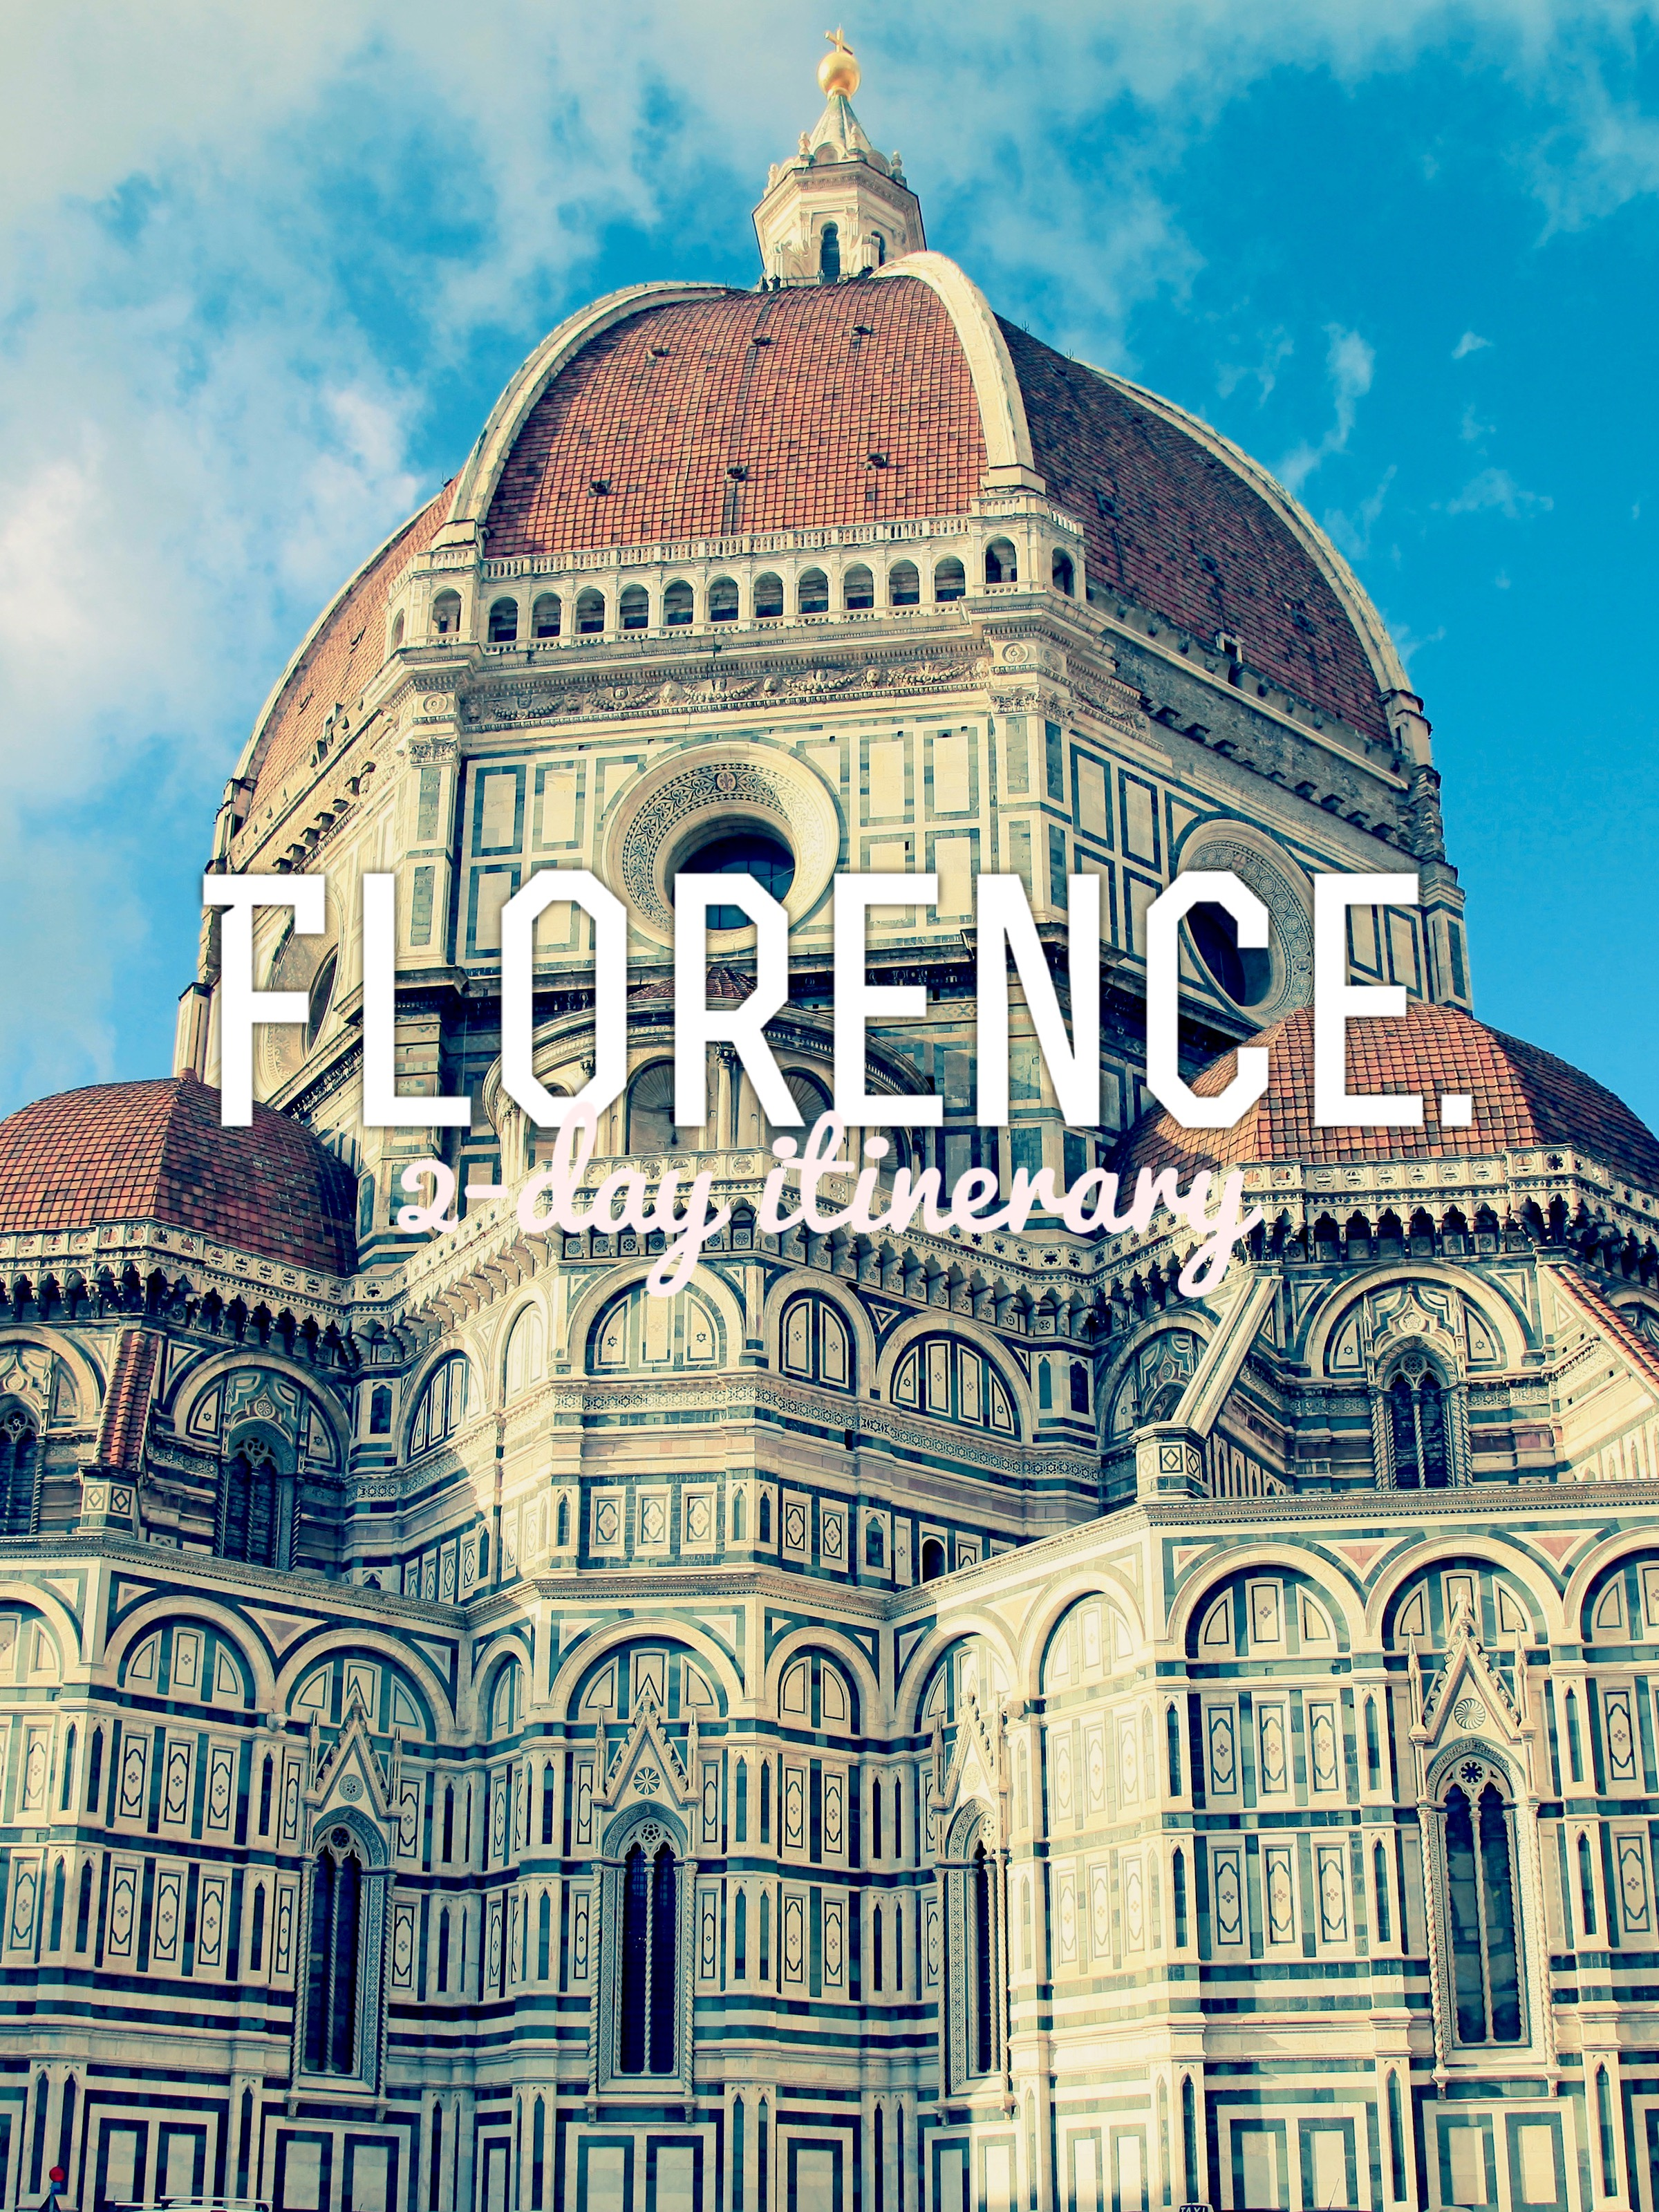 A 2-day Itinerary in Florence: The Birthplace of Renaissance